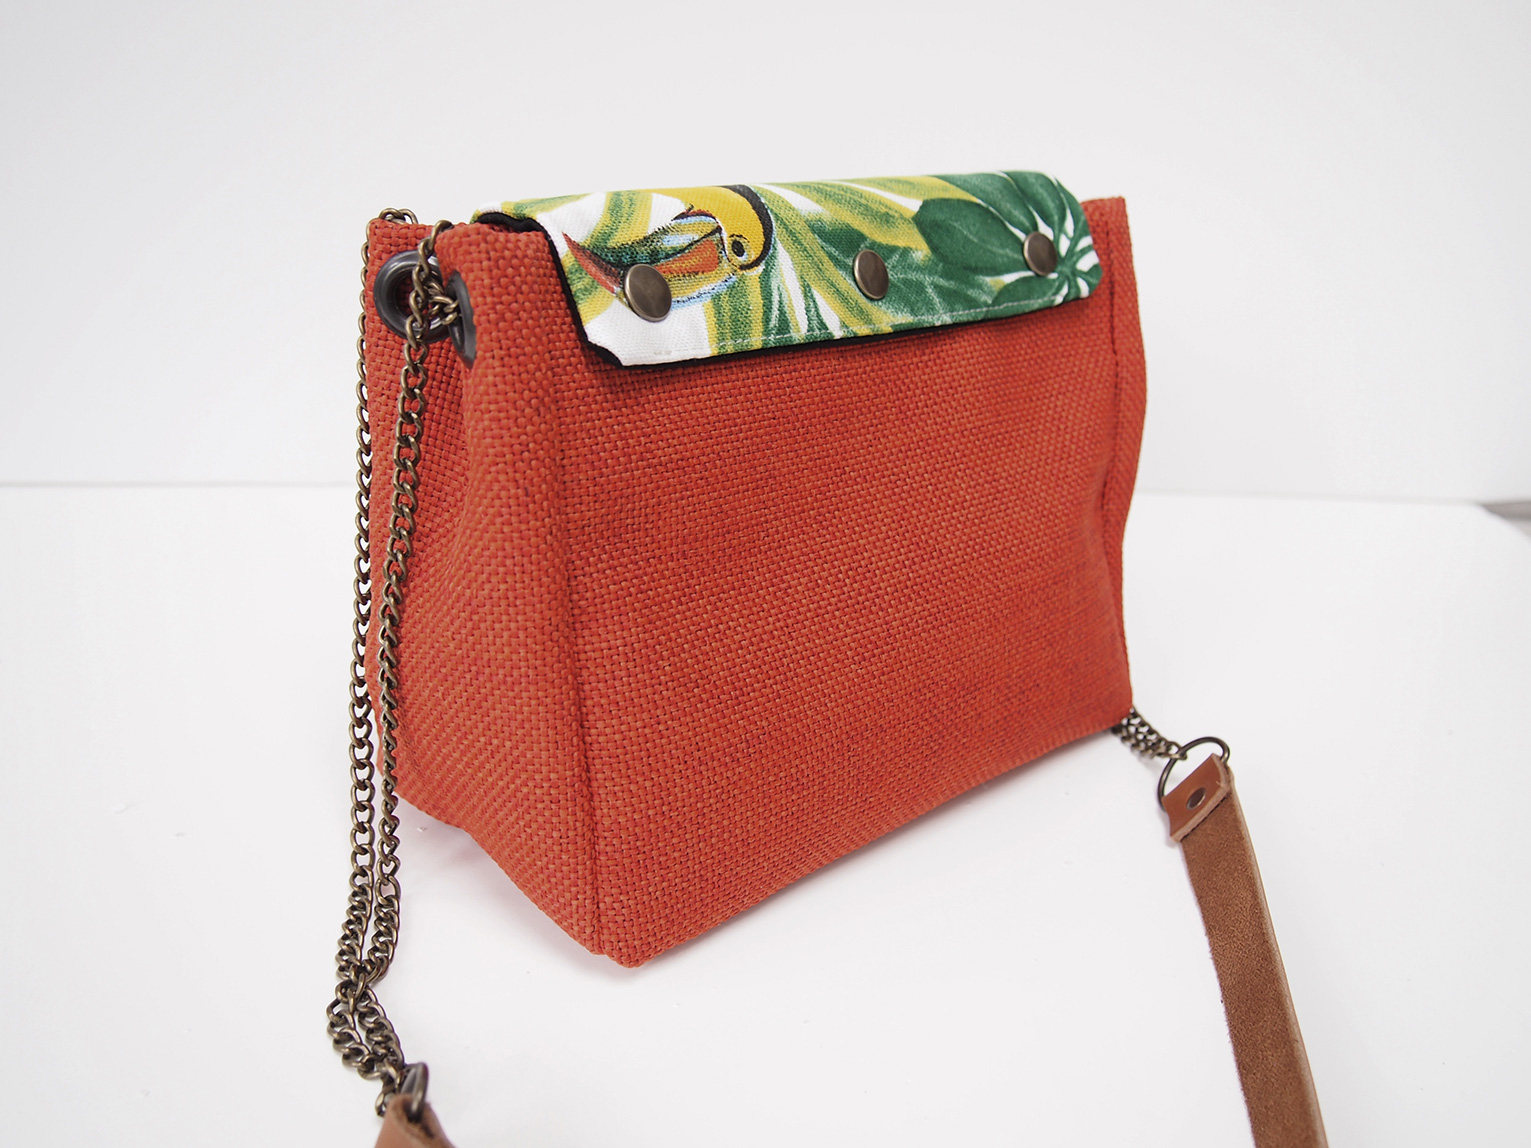 Sac June orange rabat au choix interchangeable